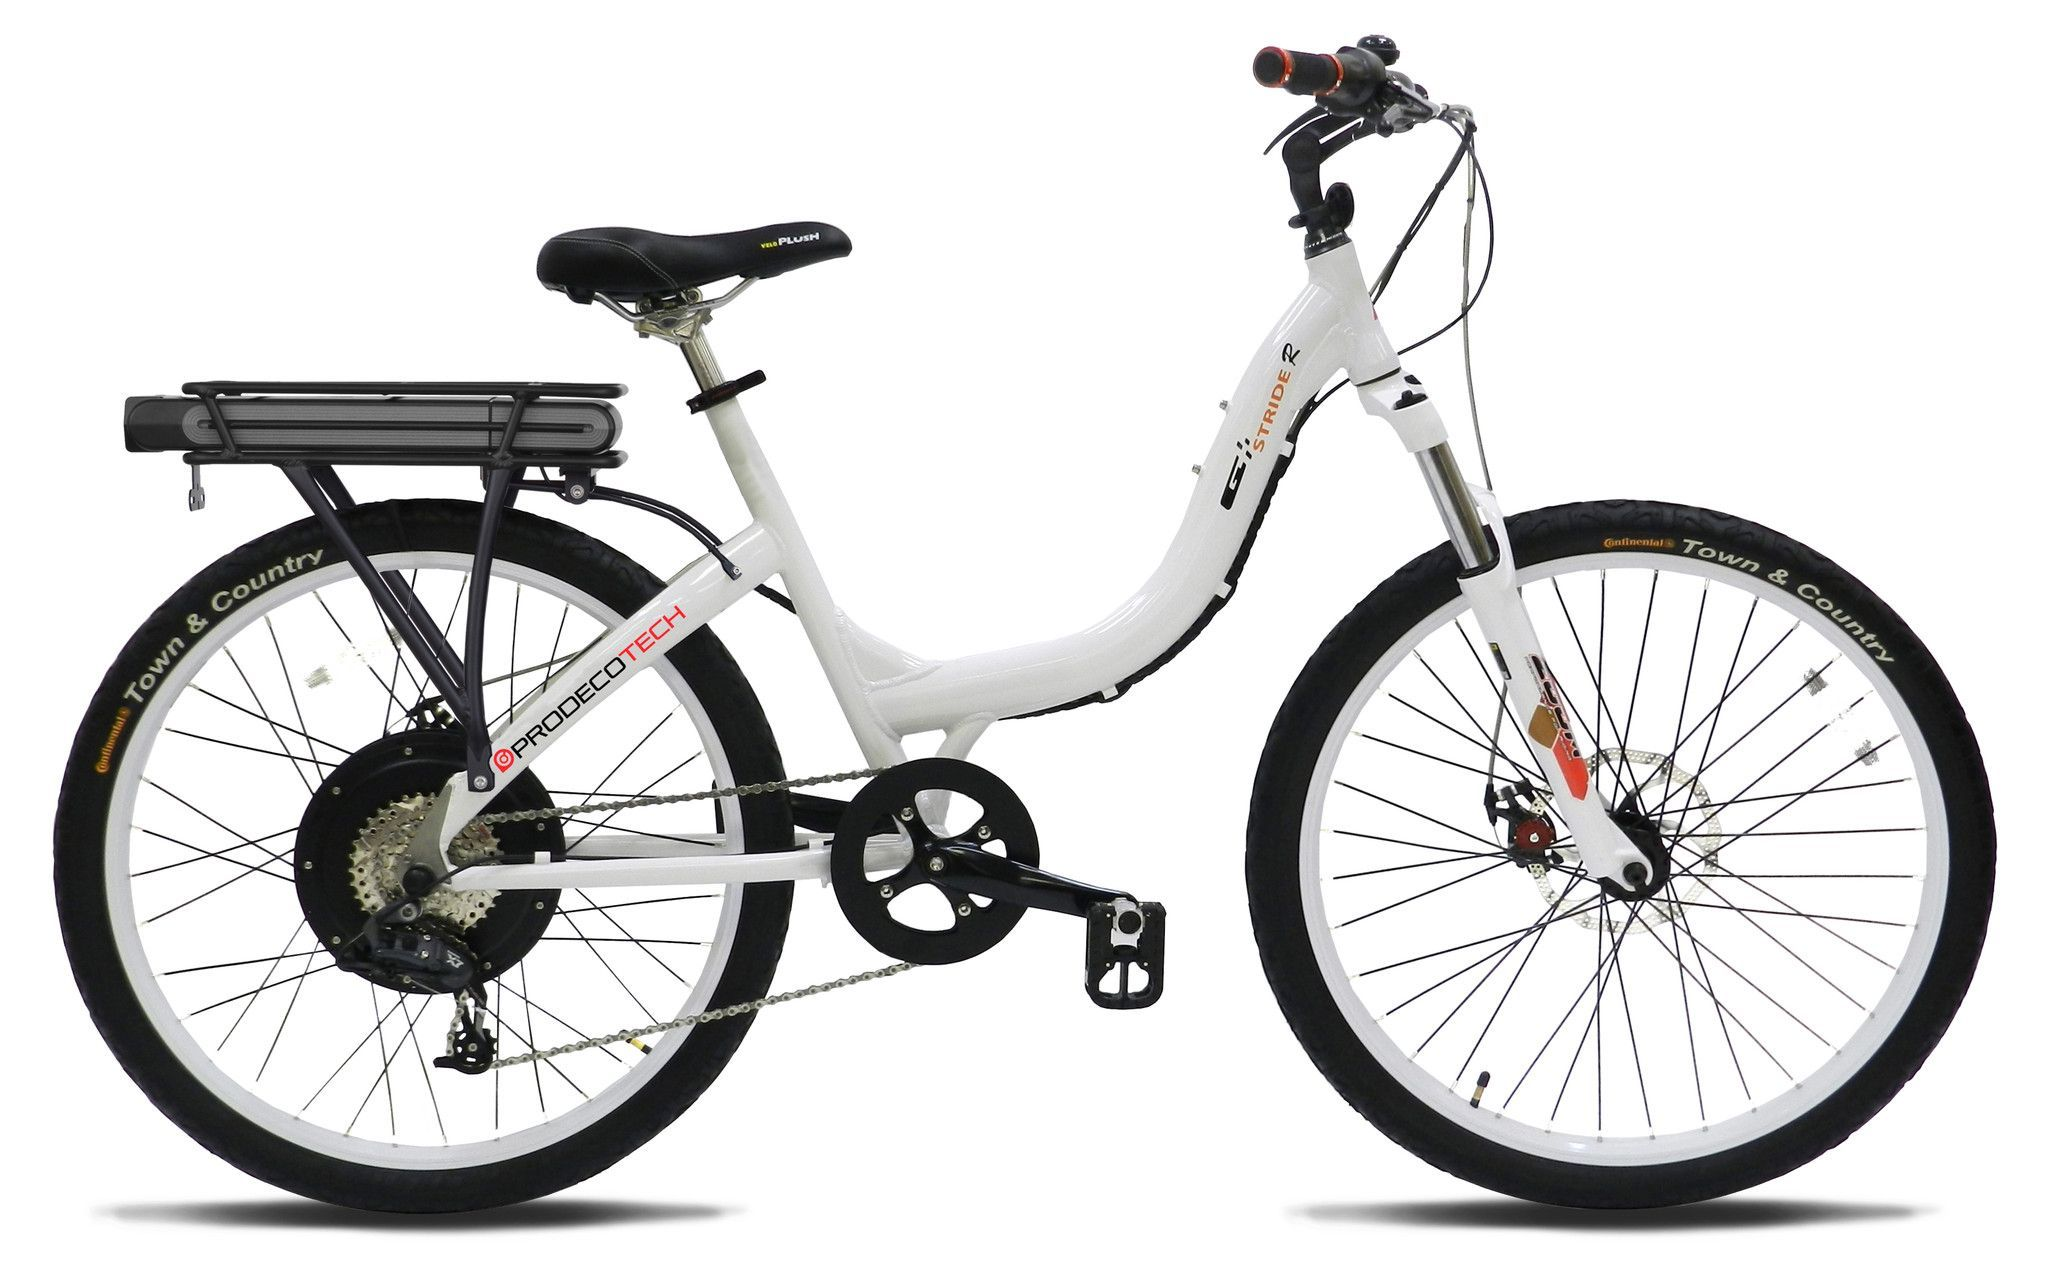 Prodecotech Stride 500 Electric Bicycle